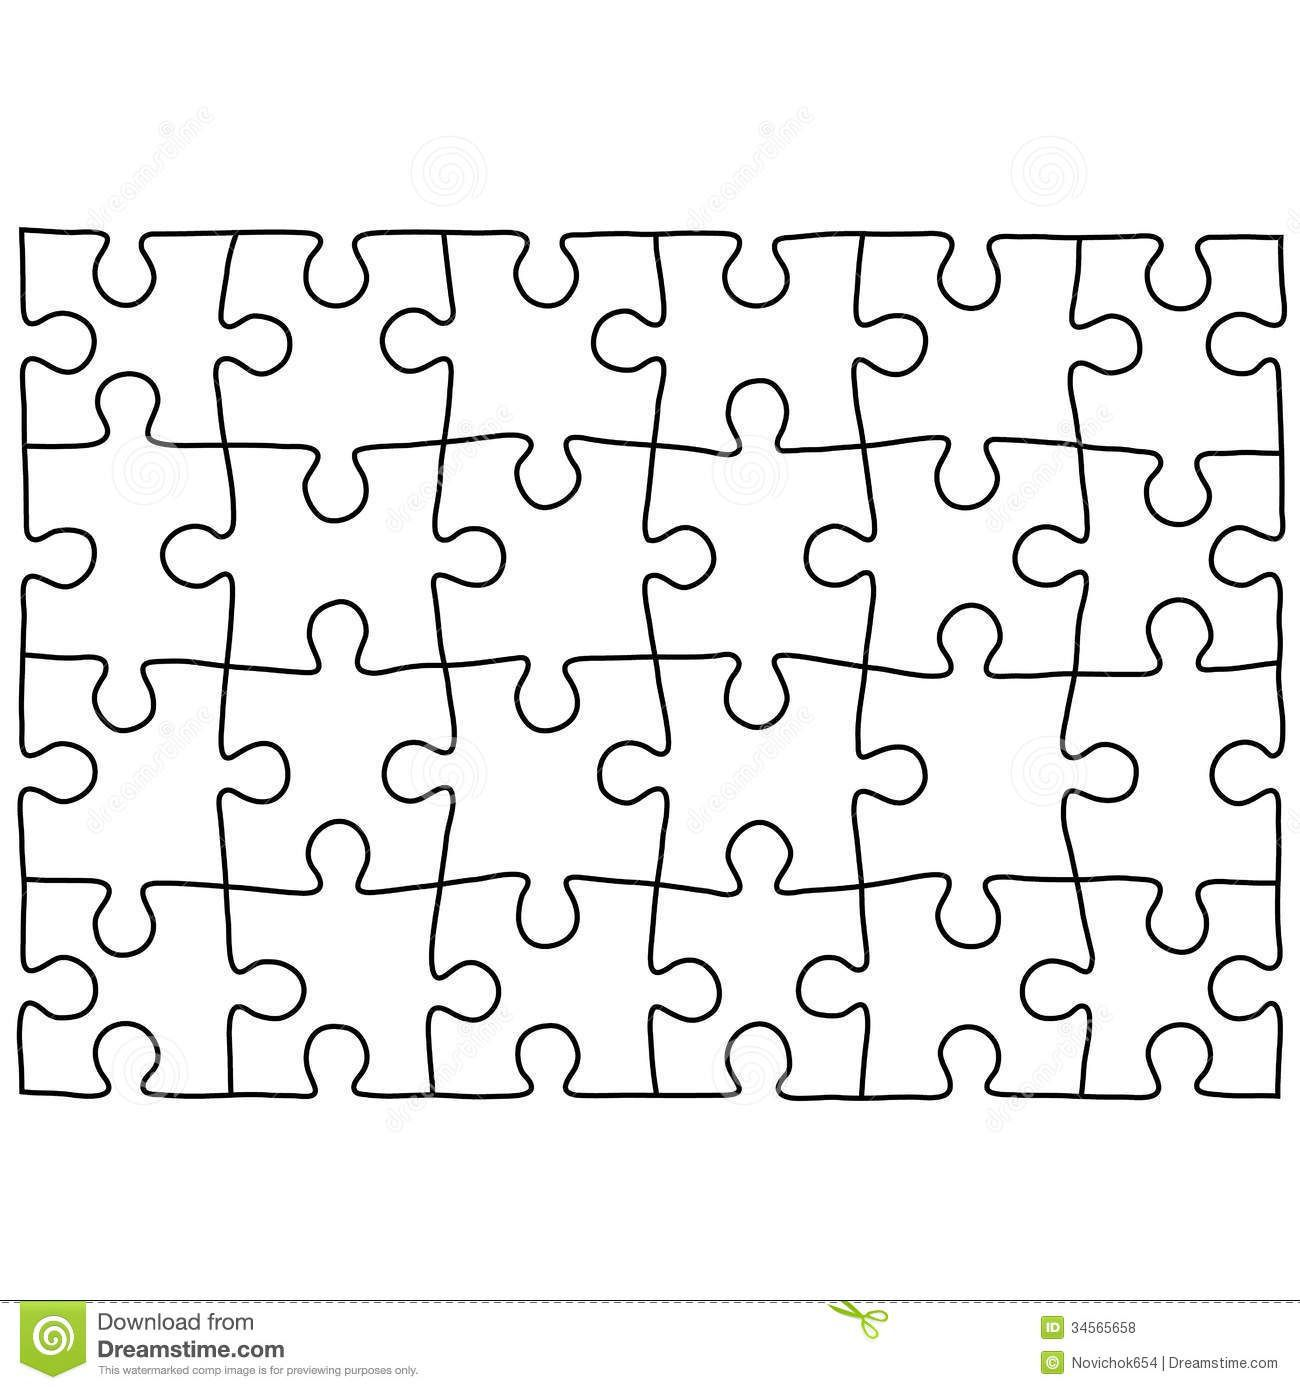 000 Simple Jig Saw Puzzle Template High Def  Printable Blank Jigsaw Vector Free PngFull